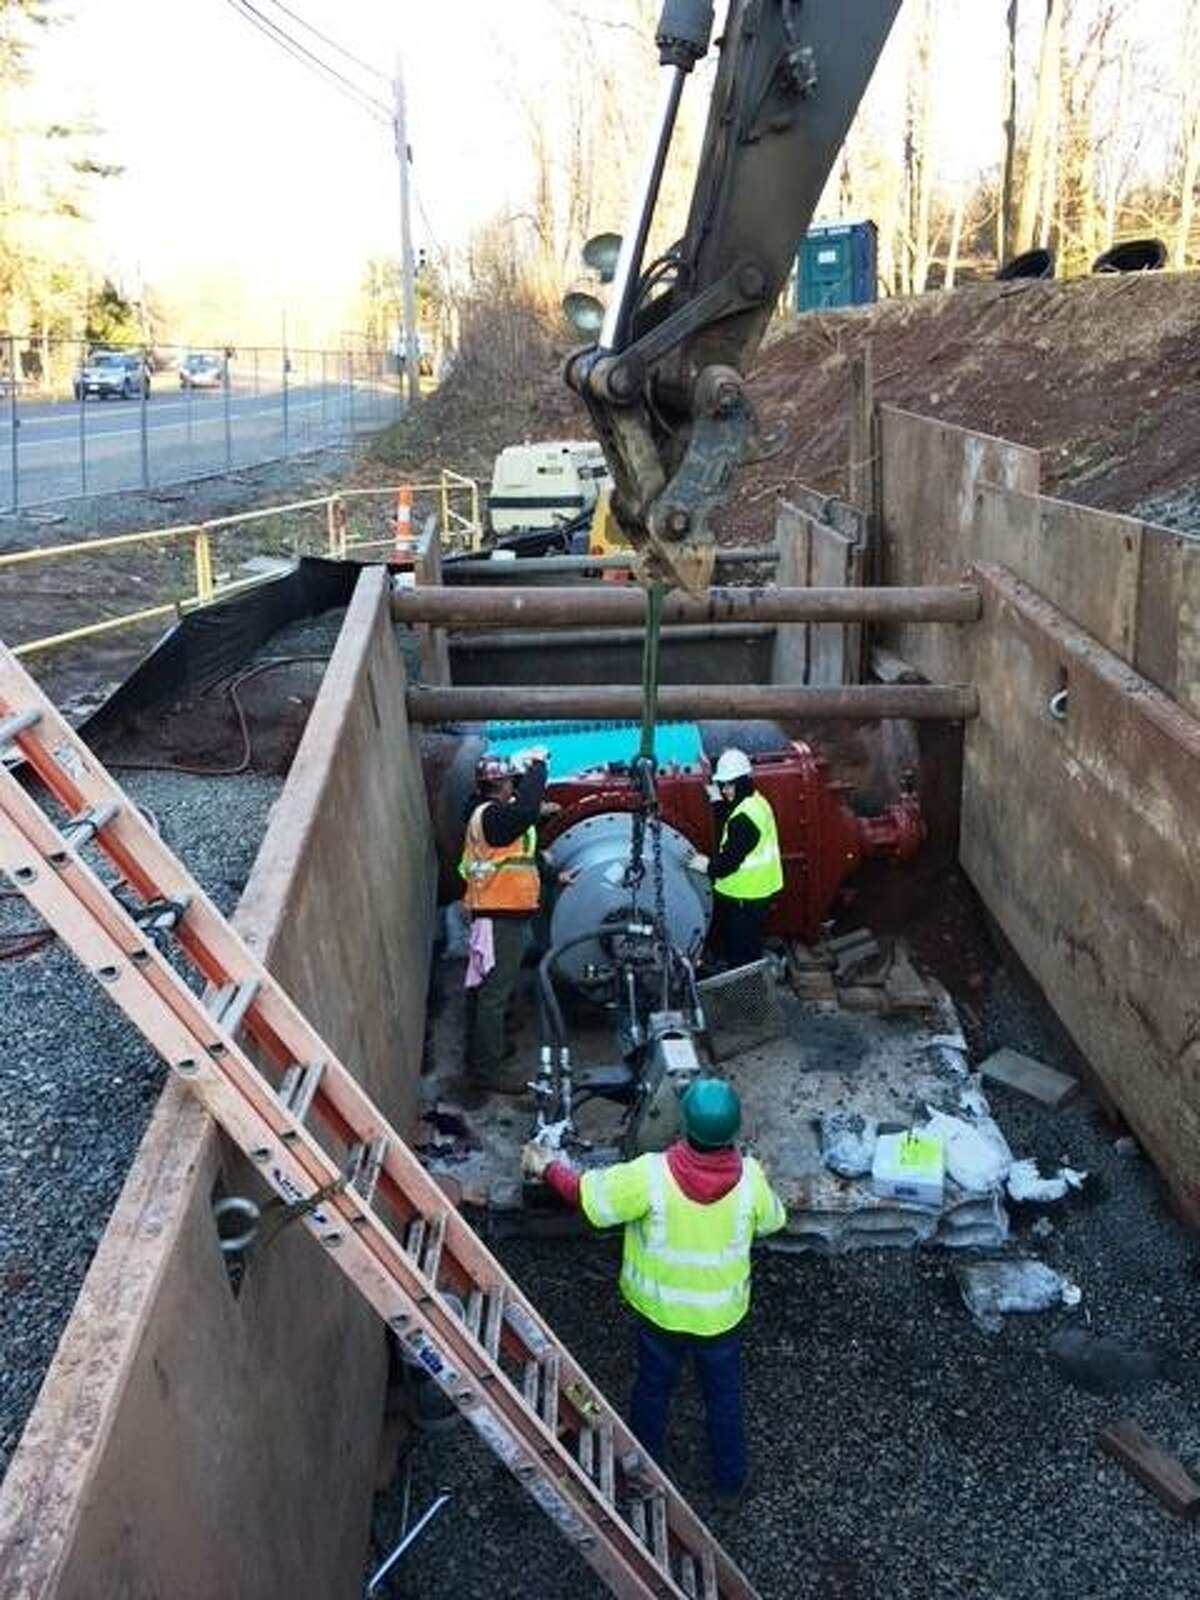 Contractors working for the Regional Water Authority repair a section of the tunnel and pipe system that brings water from Lake Galliard, the utility's largest reservoir, to a treatment facility in North Branford. The project, which cost nearly $15 million to complete, was done earlier this year.